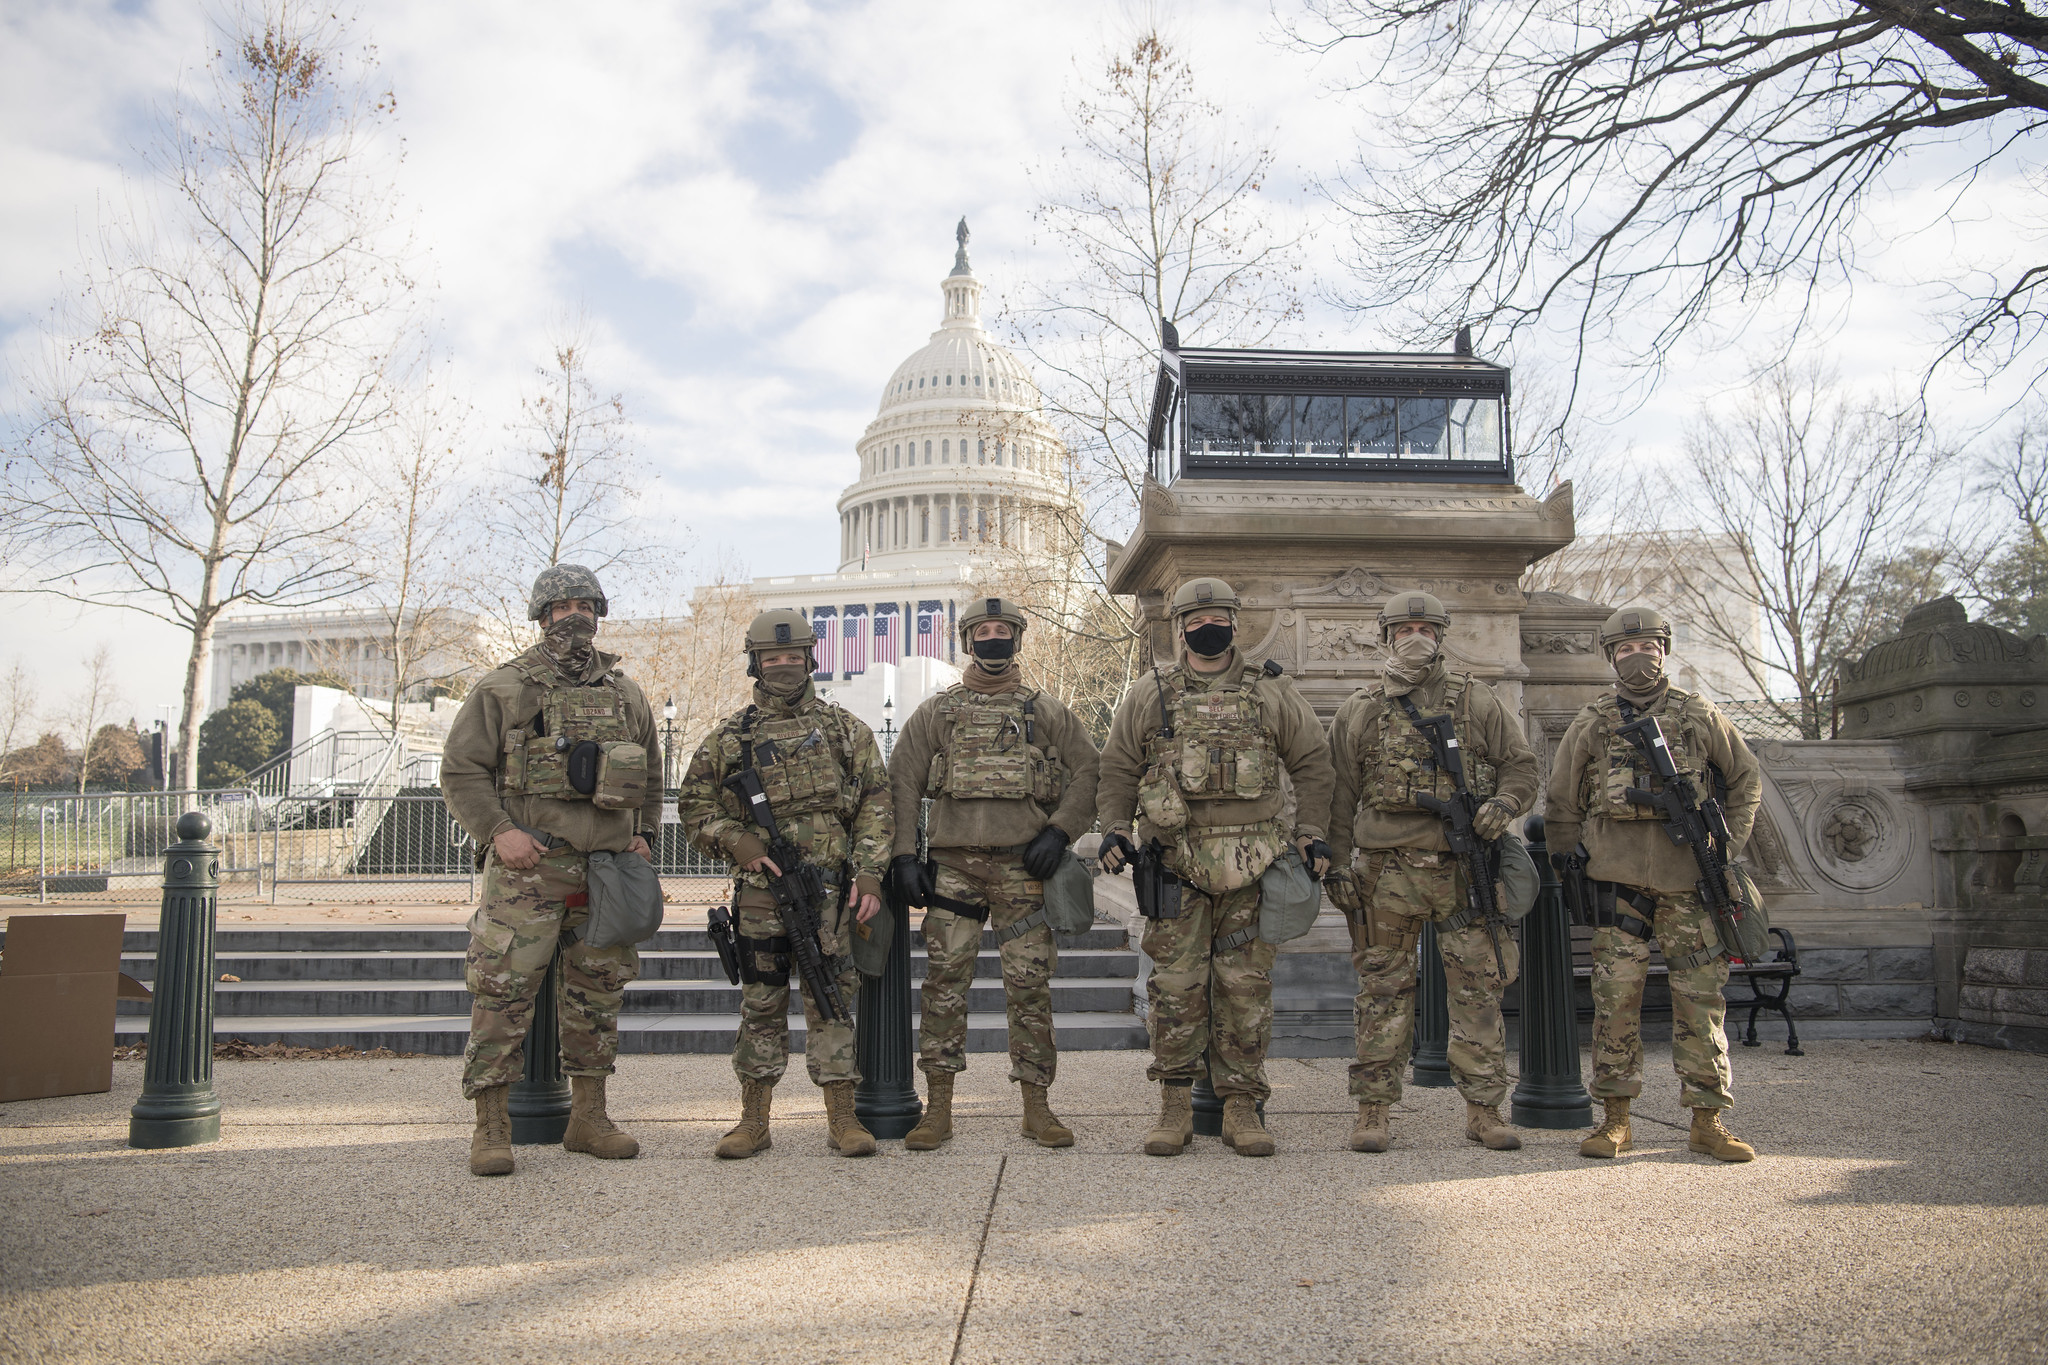 More than 21,000 Guard members from 50 states headed to D.C., and numbers may grow